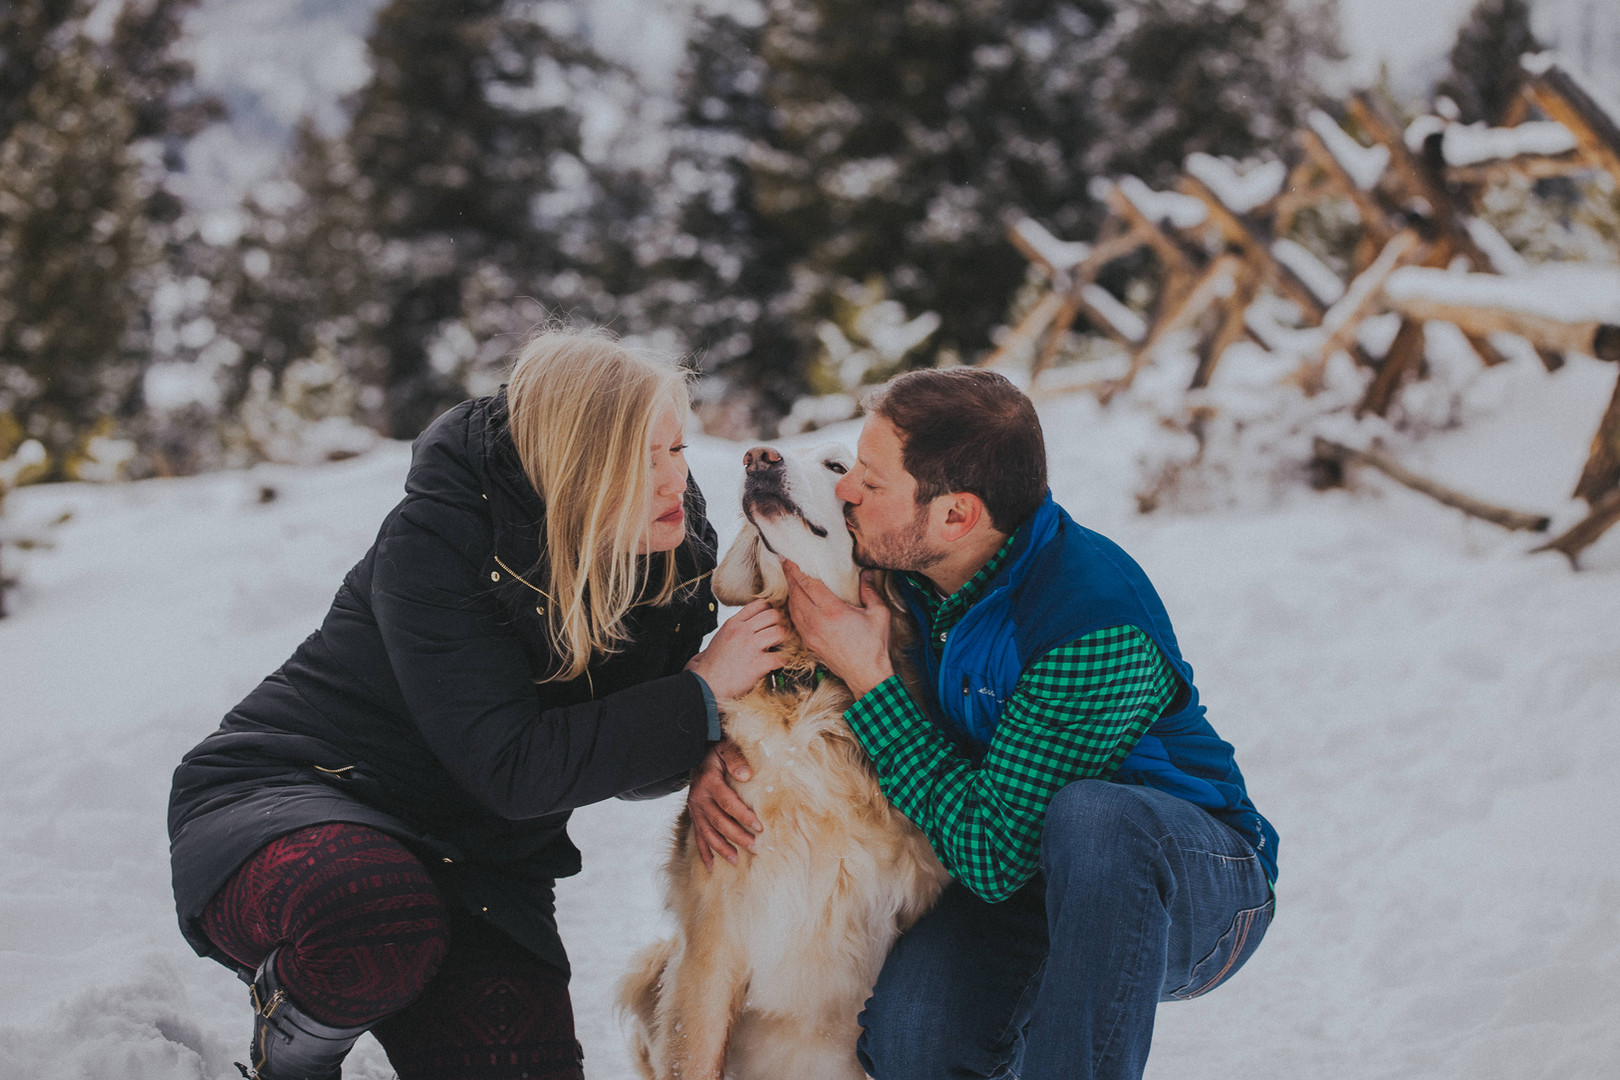 A man and woman kiss the face of a golden retriever during their Sapphire Point engagement session